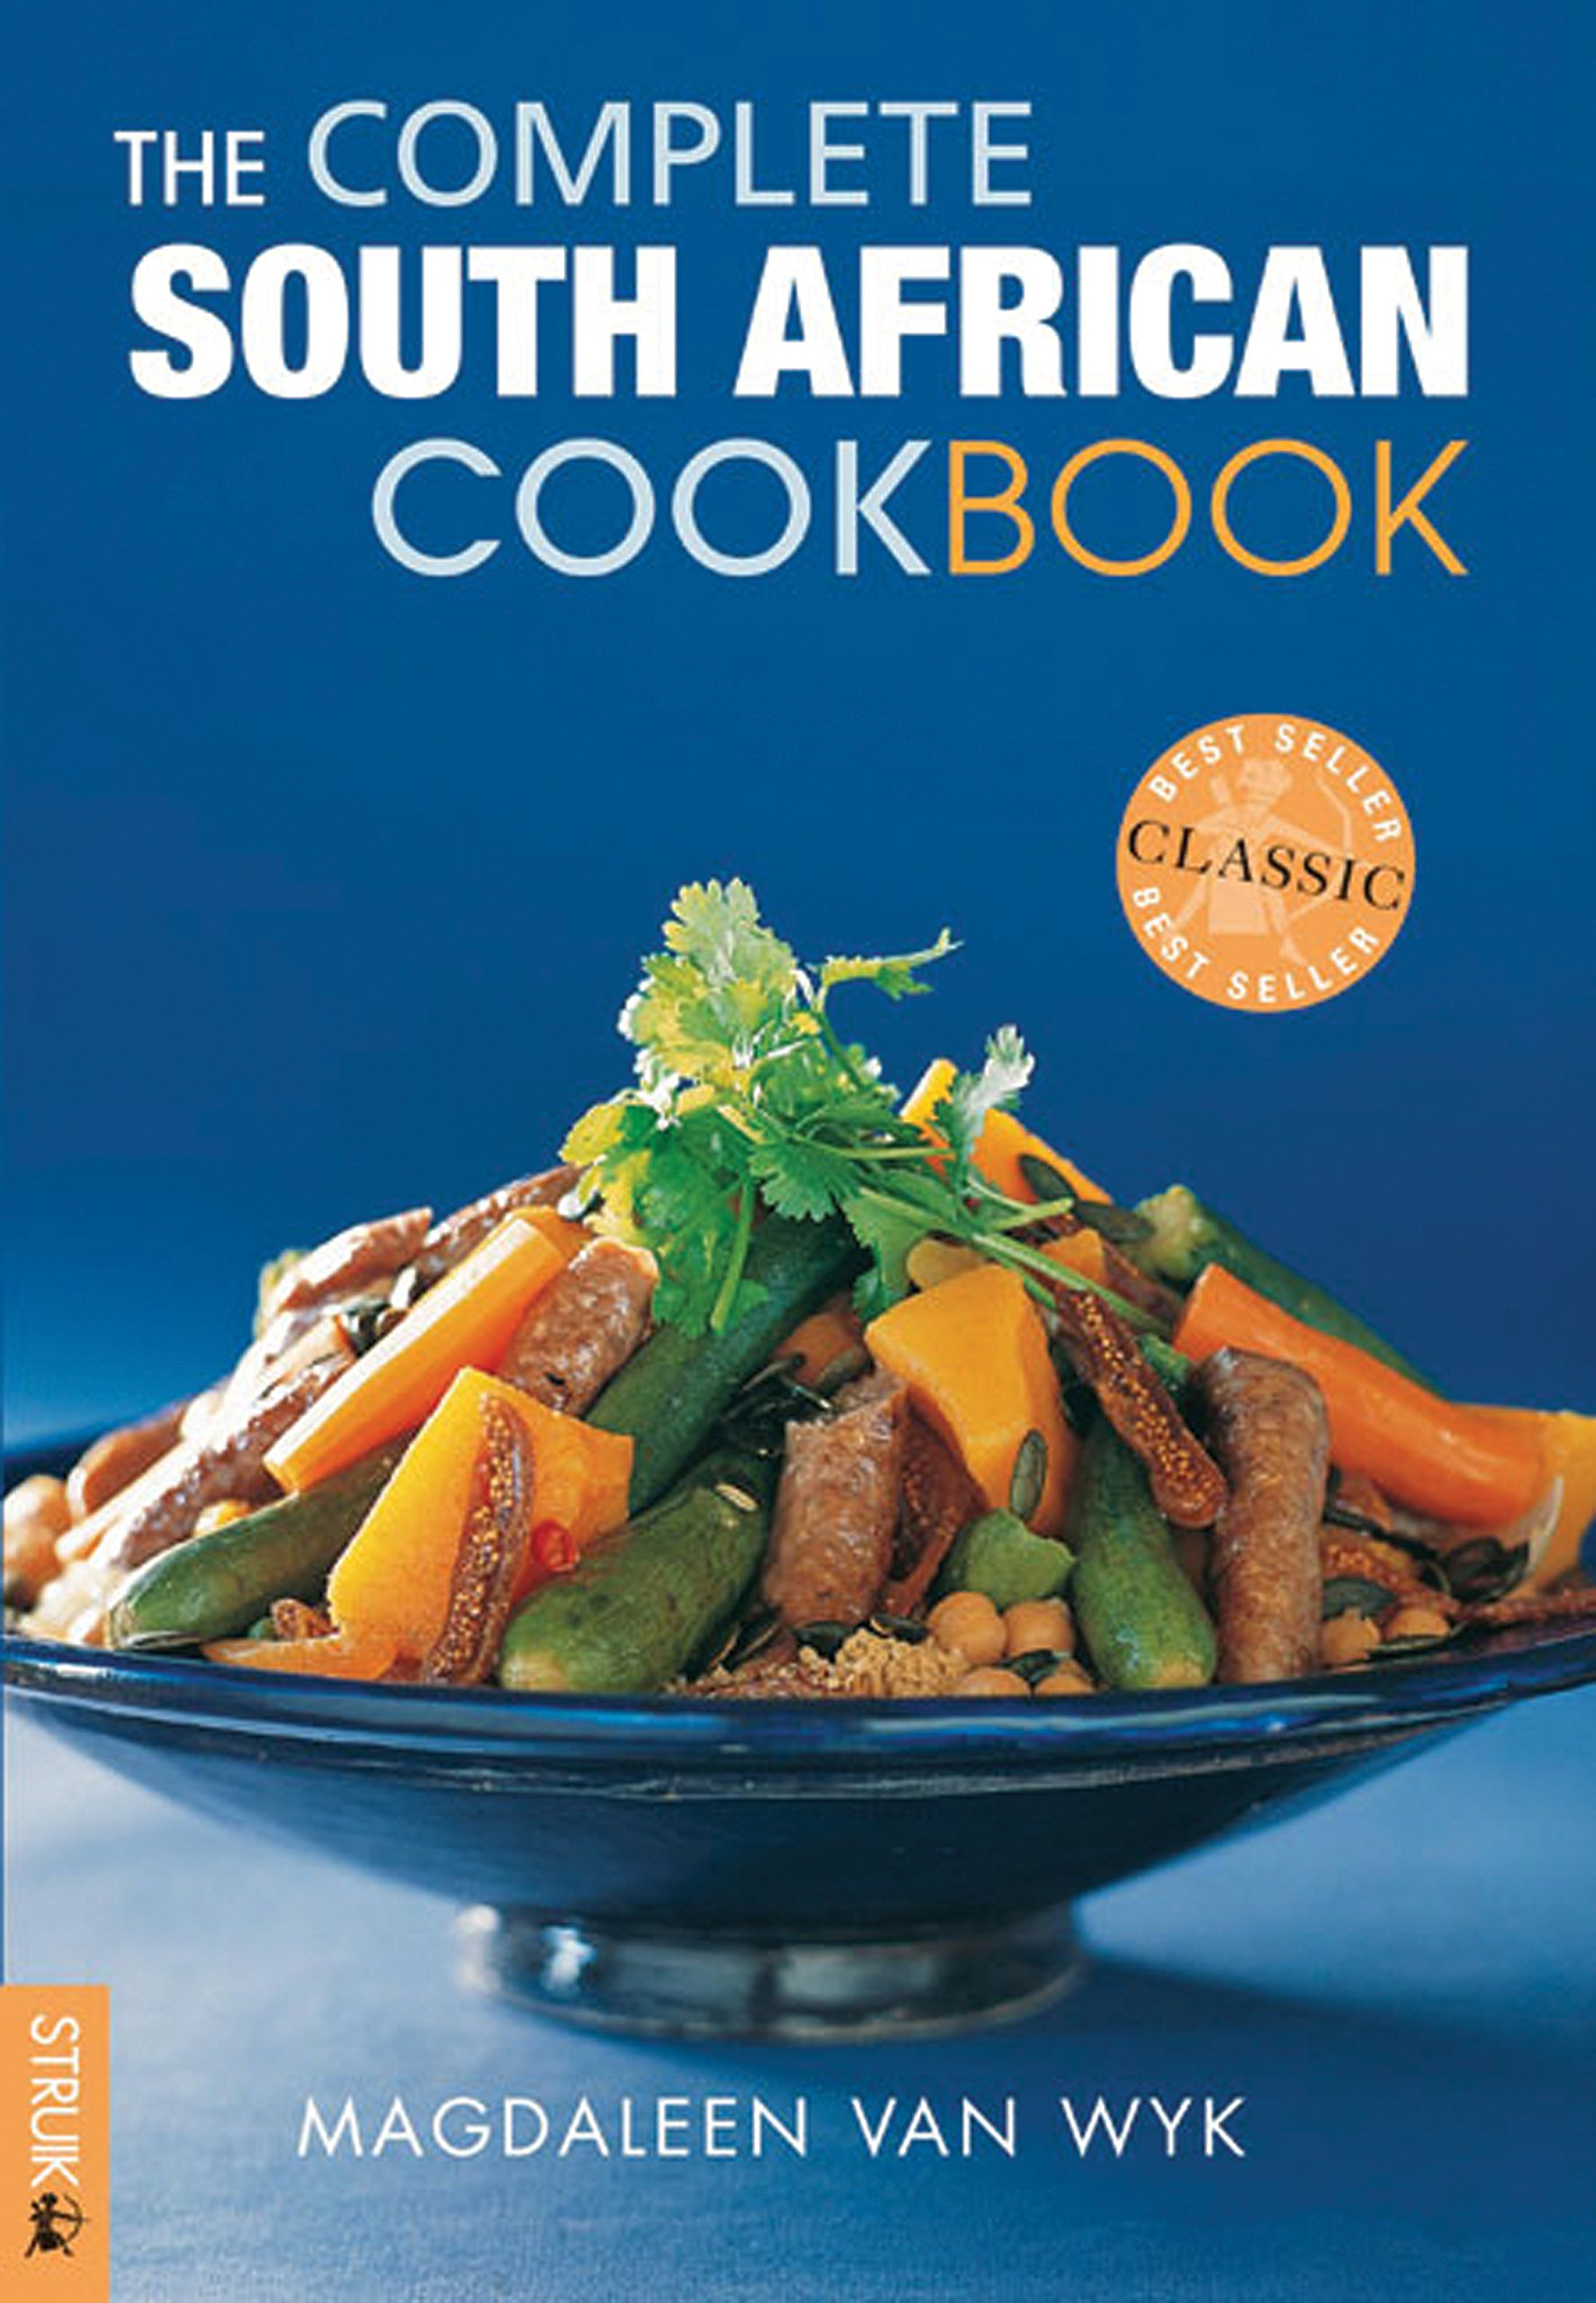 The complete south african cookbook amazon magdaleen van wyk the complete south african cookbook amazon magdaleen van wyk 9781868727469 books forumfinder Image collections